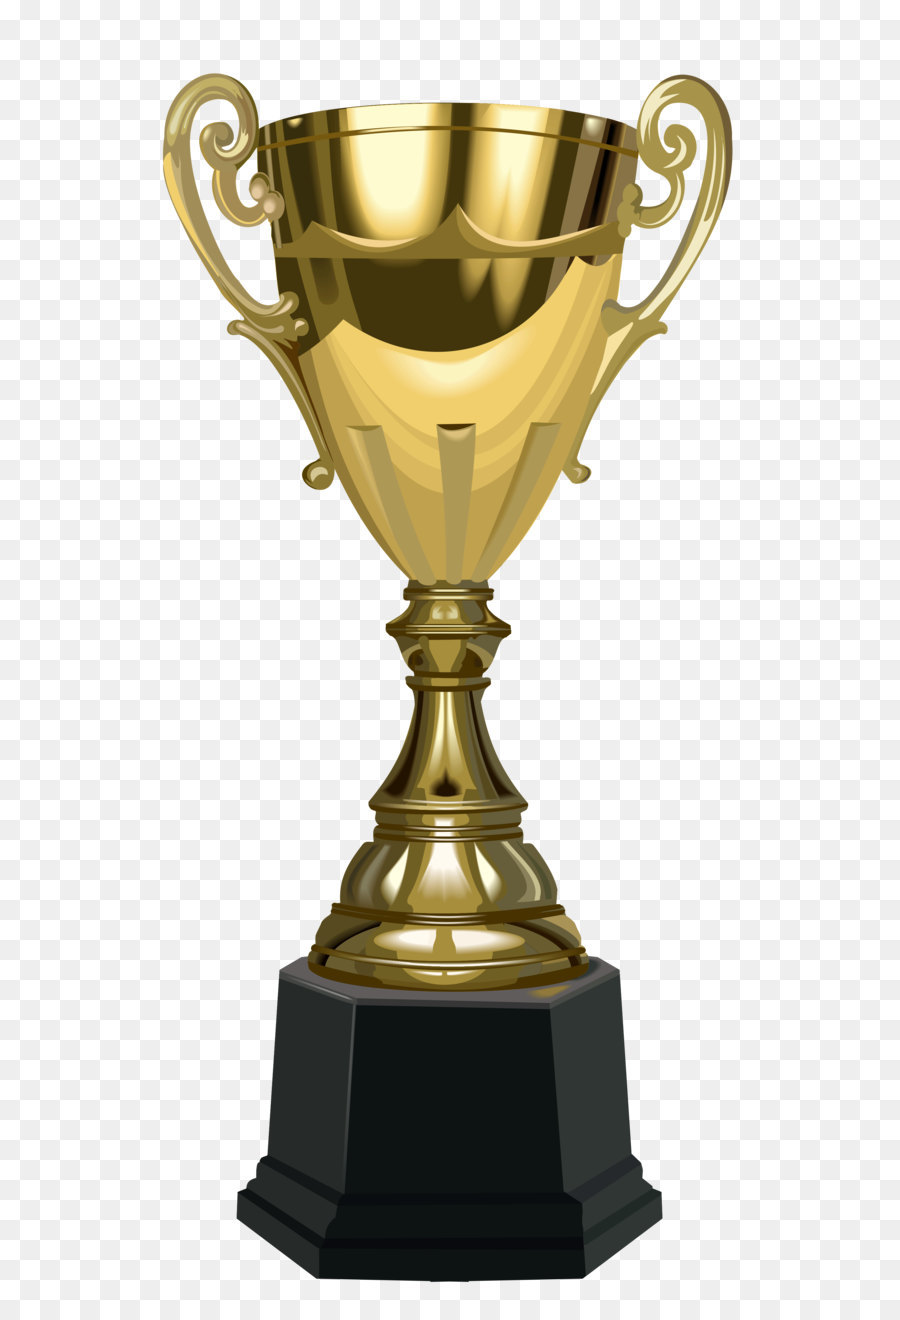 Trophies Png - Trophy Prize Award Clip art - Cup Trophy PNG Clipart png download ...